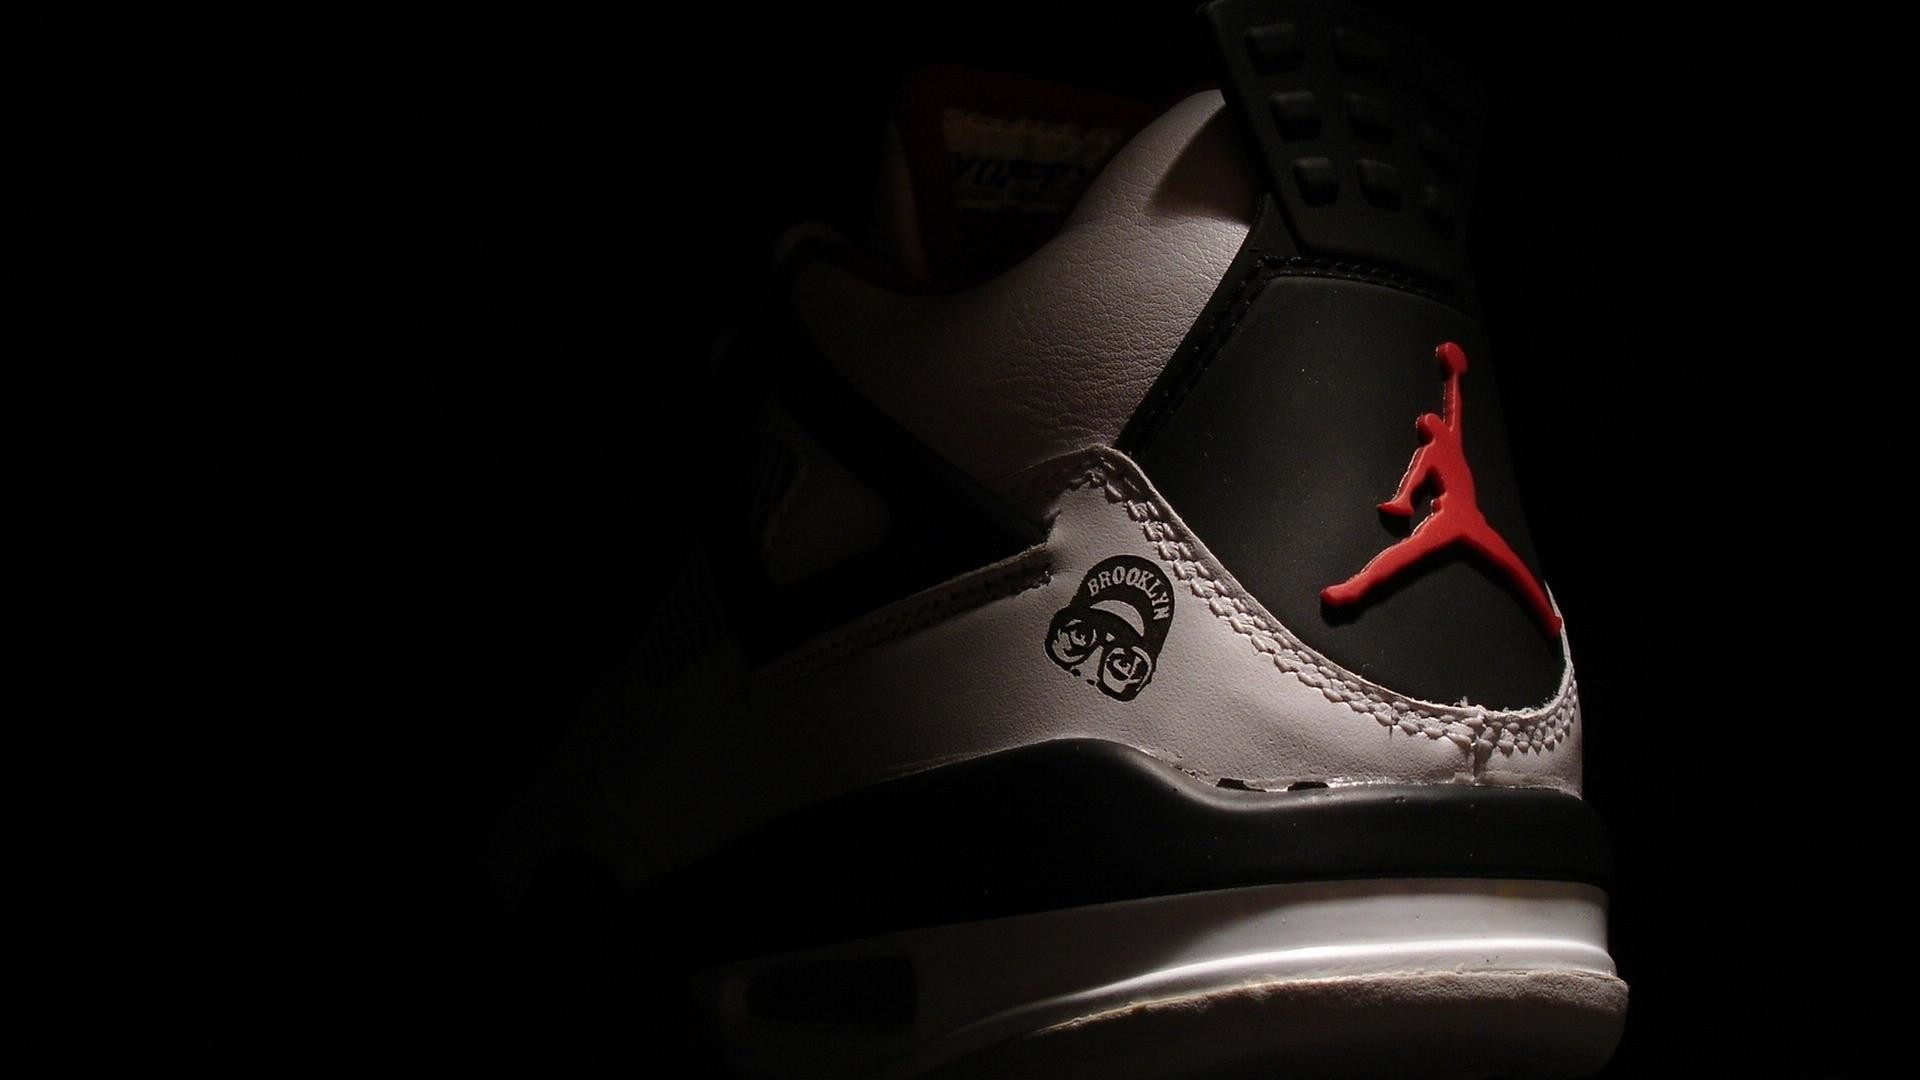 3840x2160 Nike Air Jordan Logo Wallpaper Nike-air-jordan